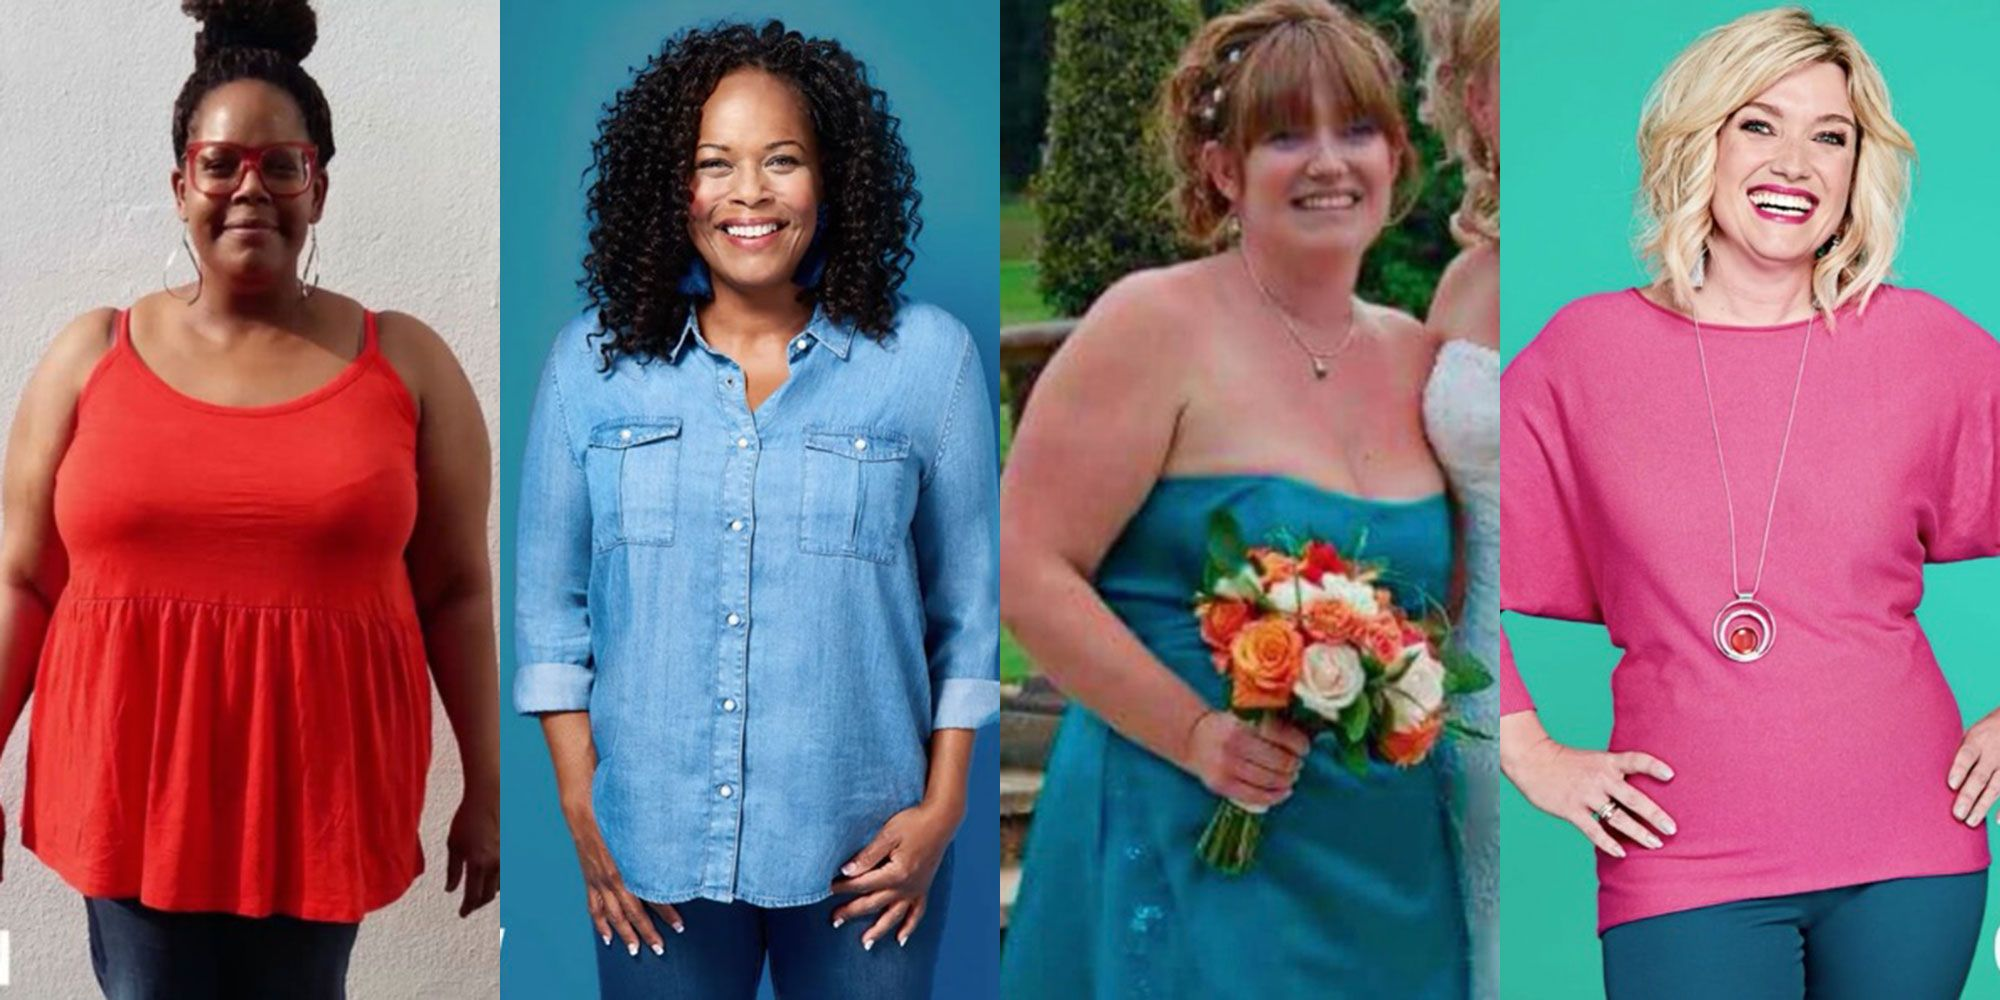 The important reason weight watchers is ditching before and after photos